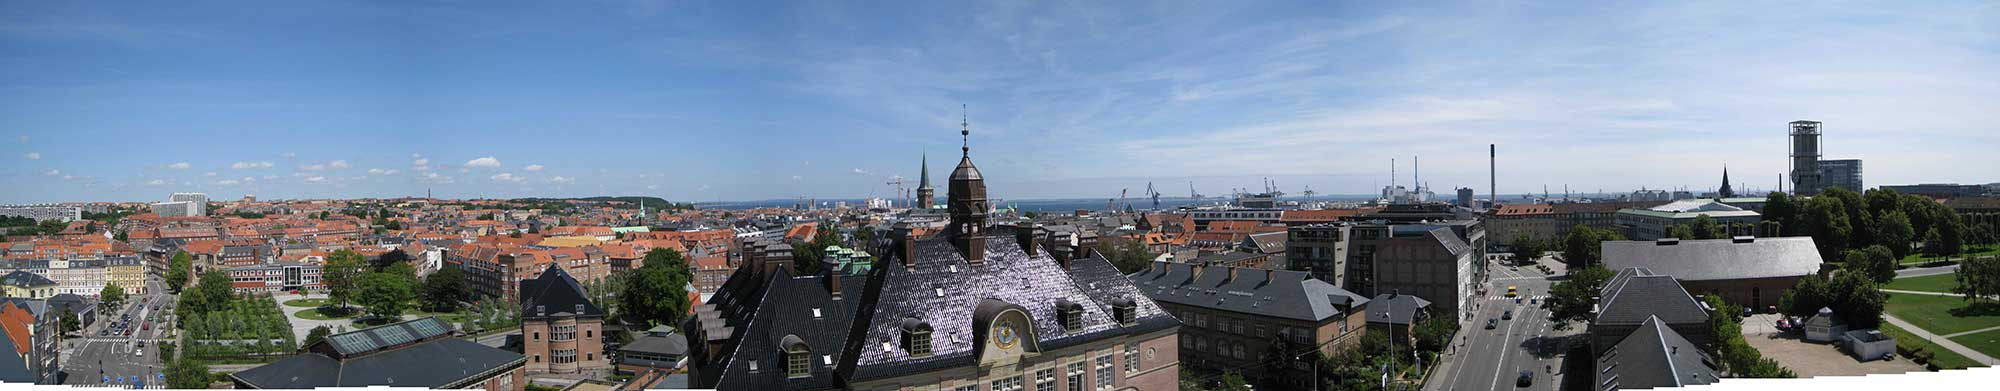 Rooftop view of the central parts of Aarhus with the harbor area and the sea in the background. (Photo: DTU Space)